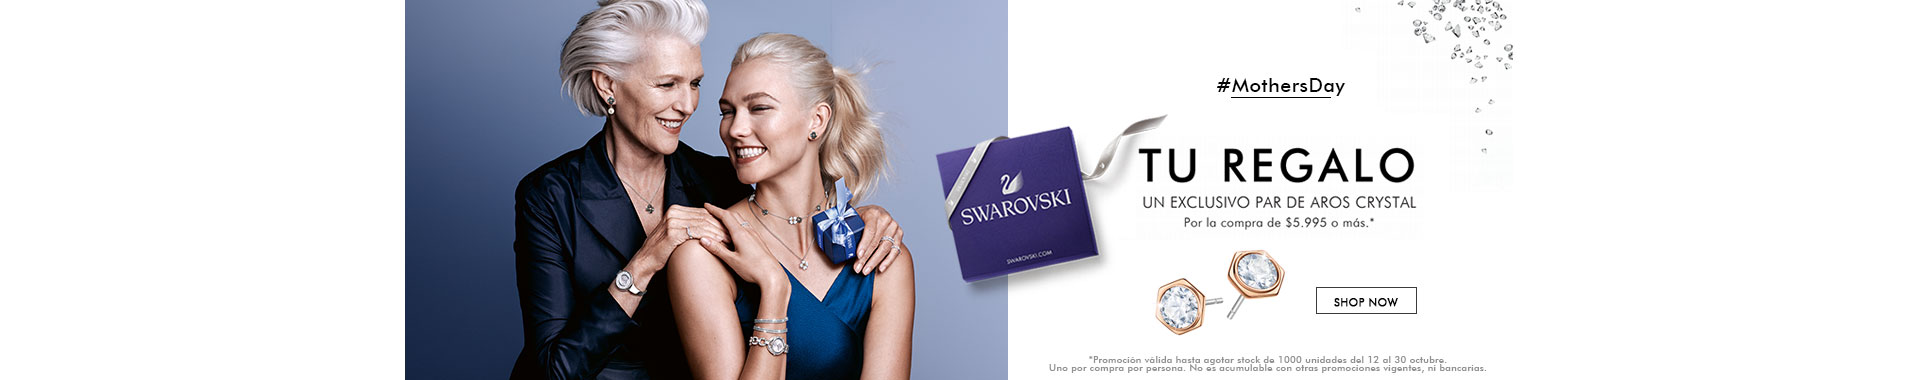 Banner mothersday swarovski